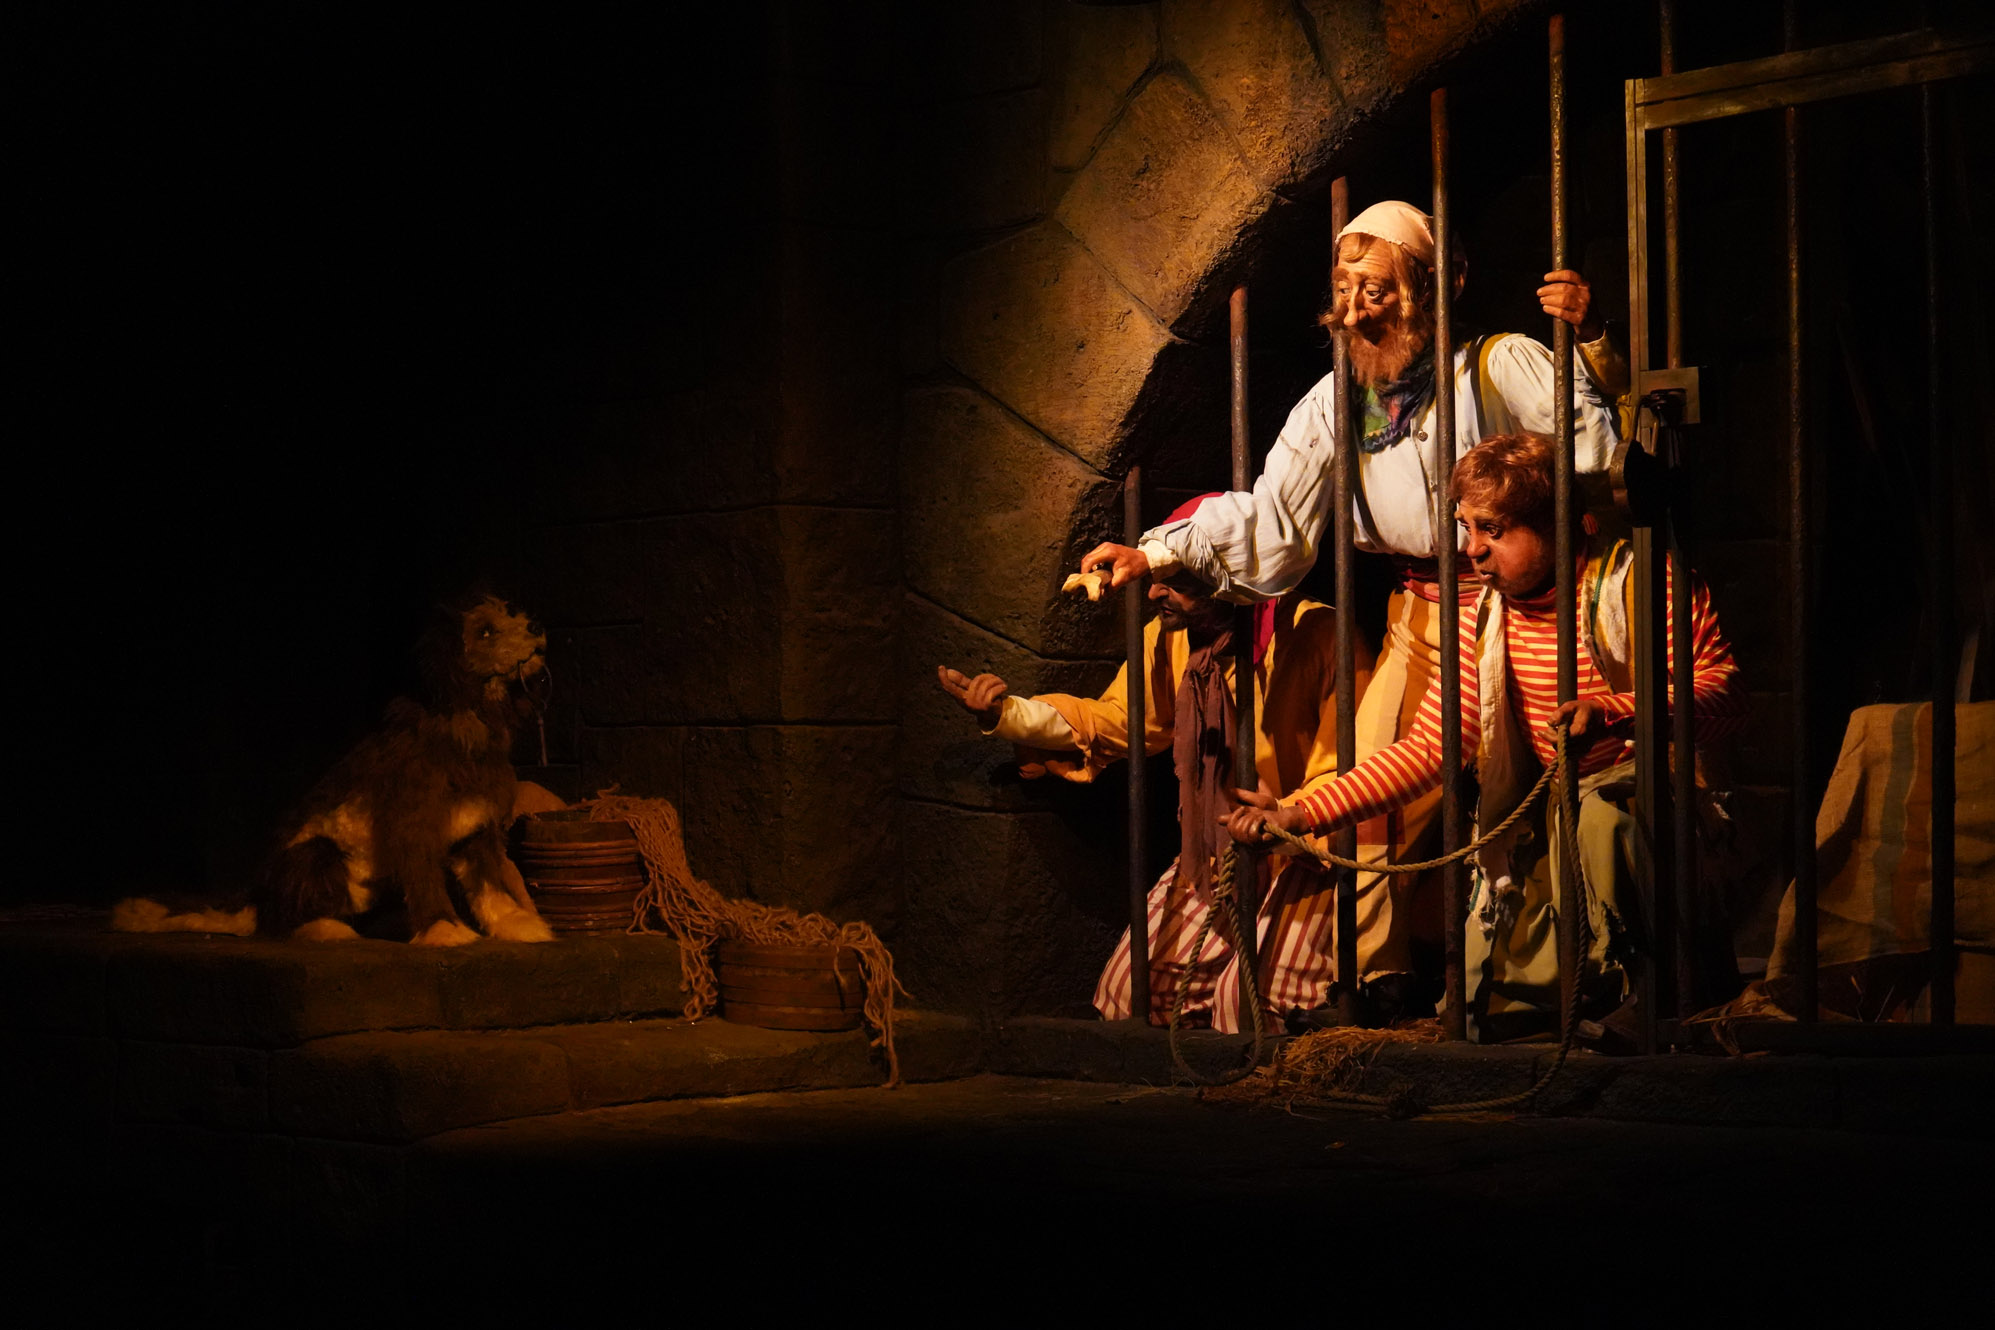 Pirates of the Caribbean ride at Disney World